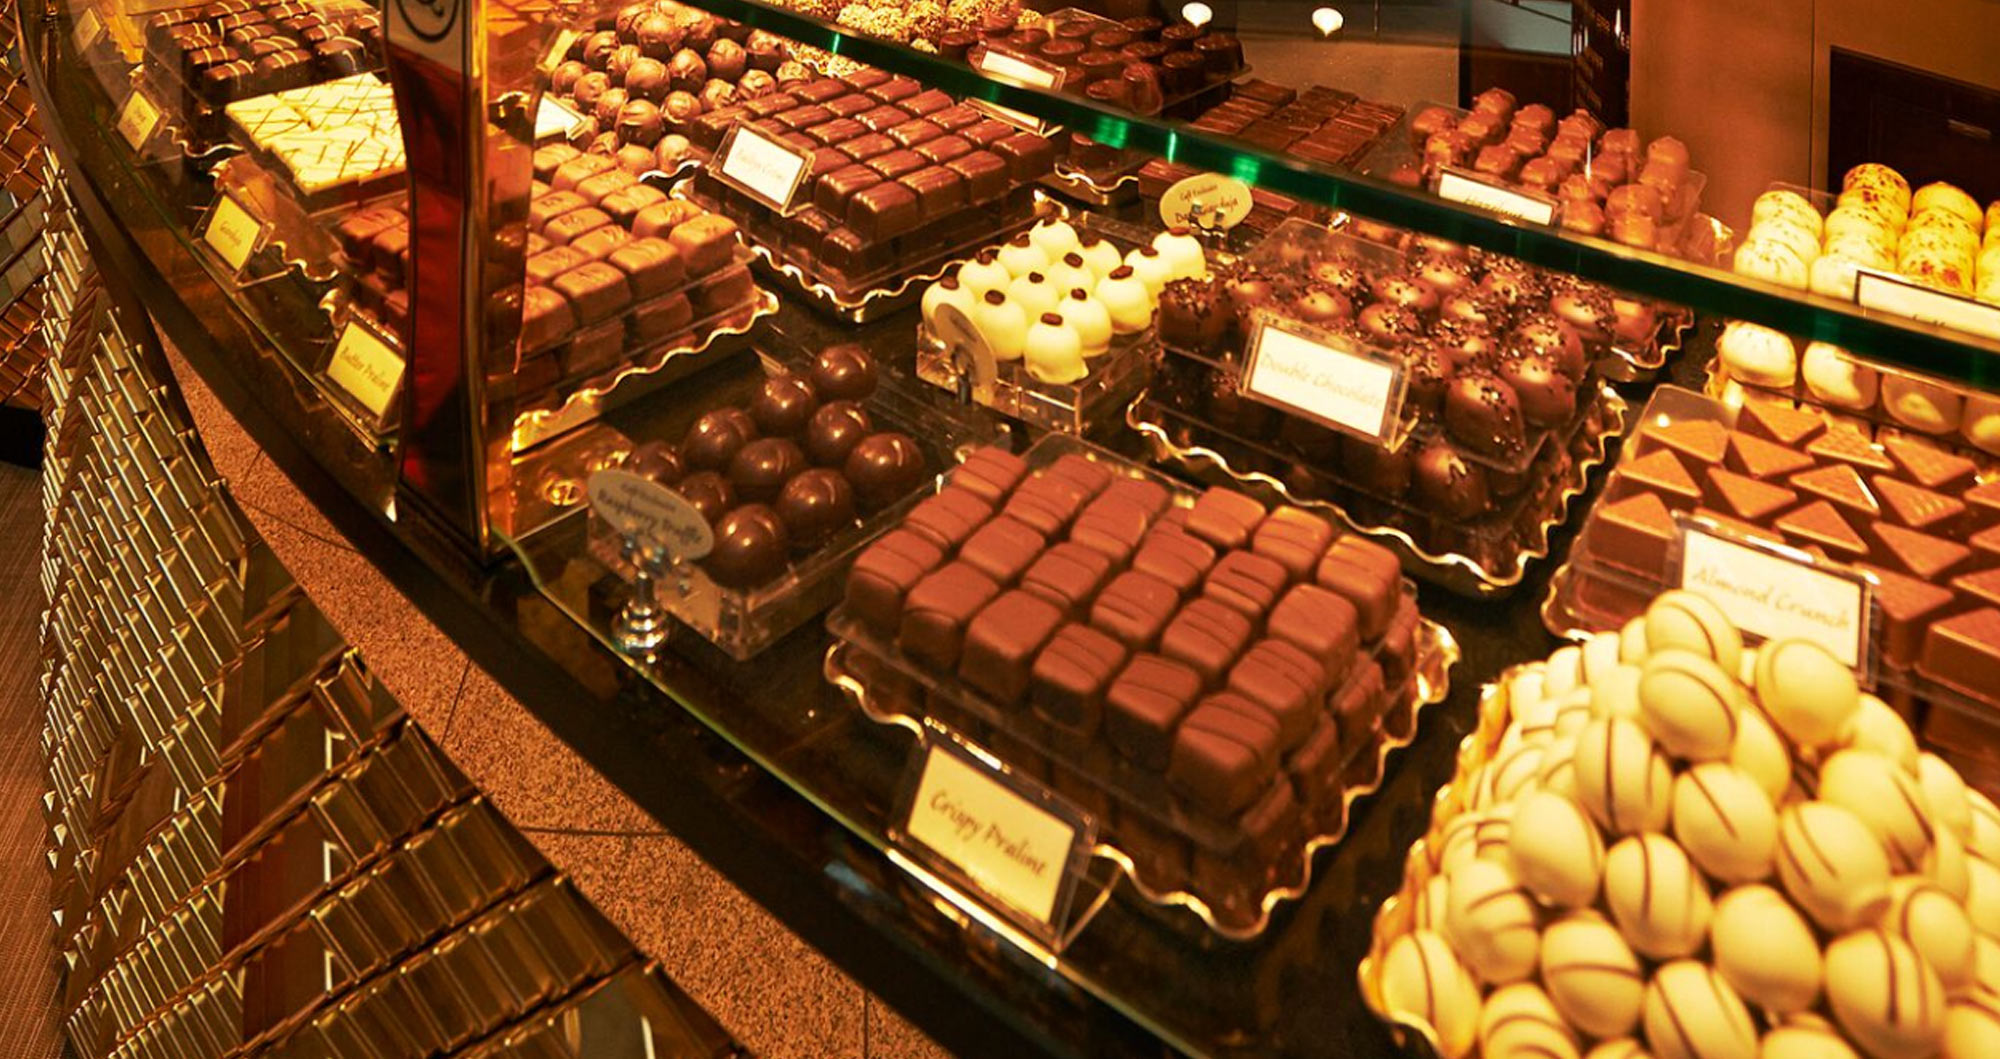 Butlers Chocolates Karachi Airport, Pakistan